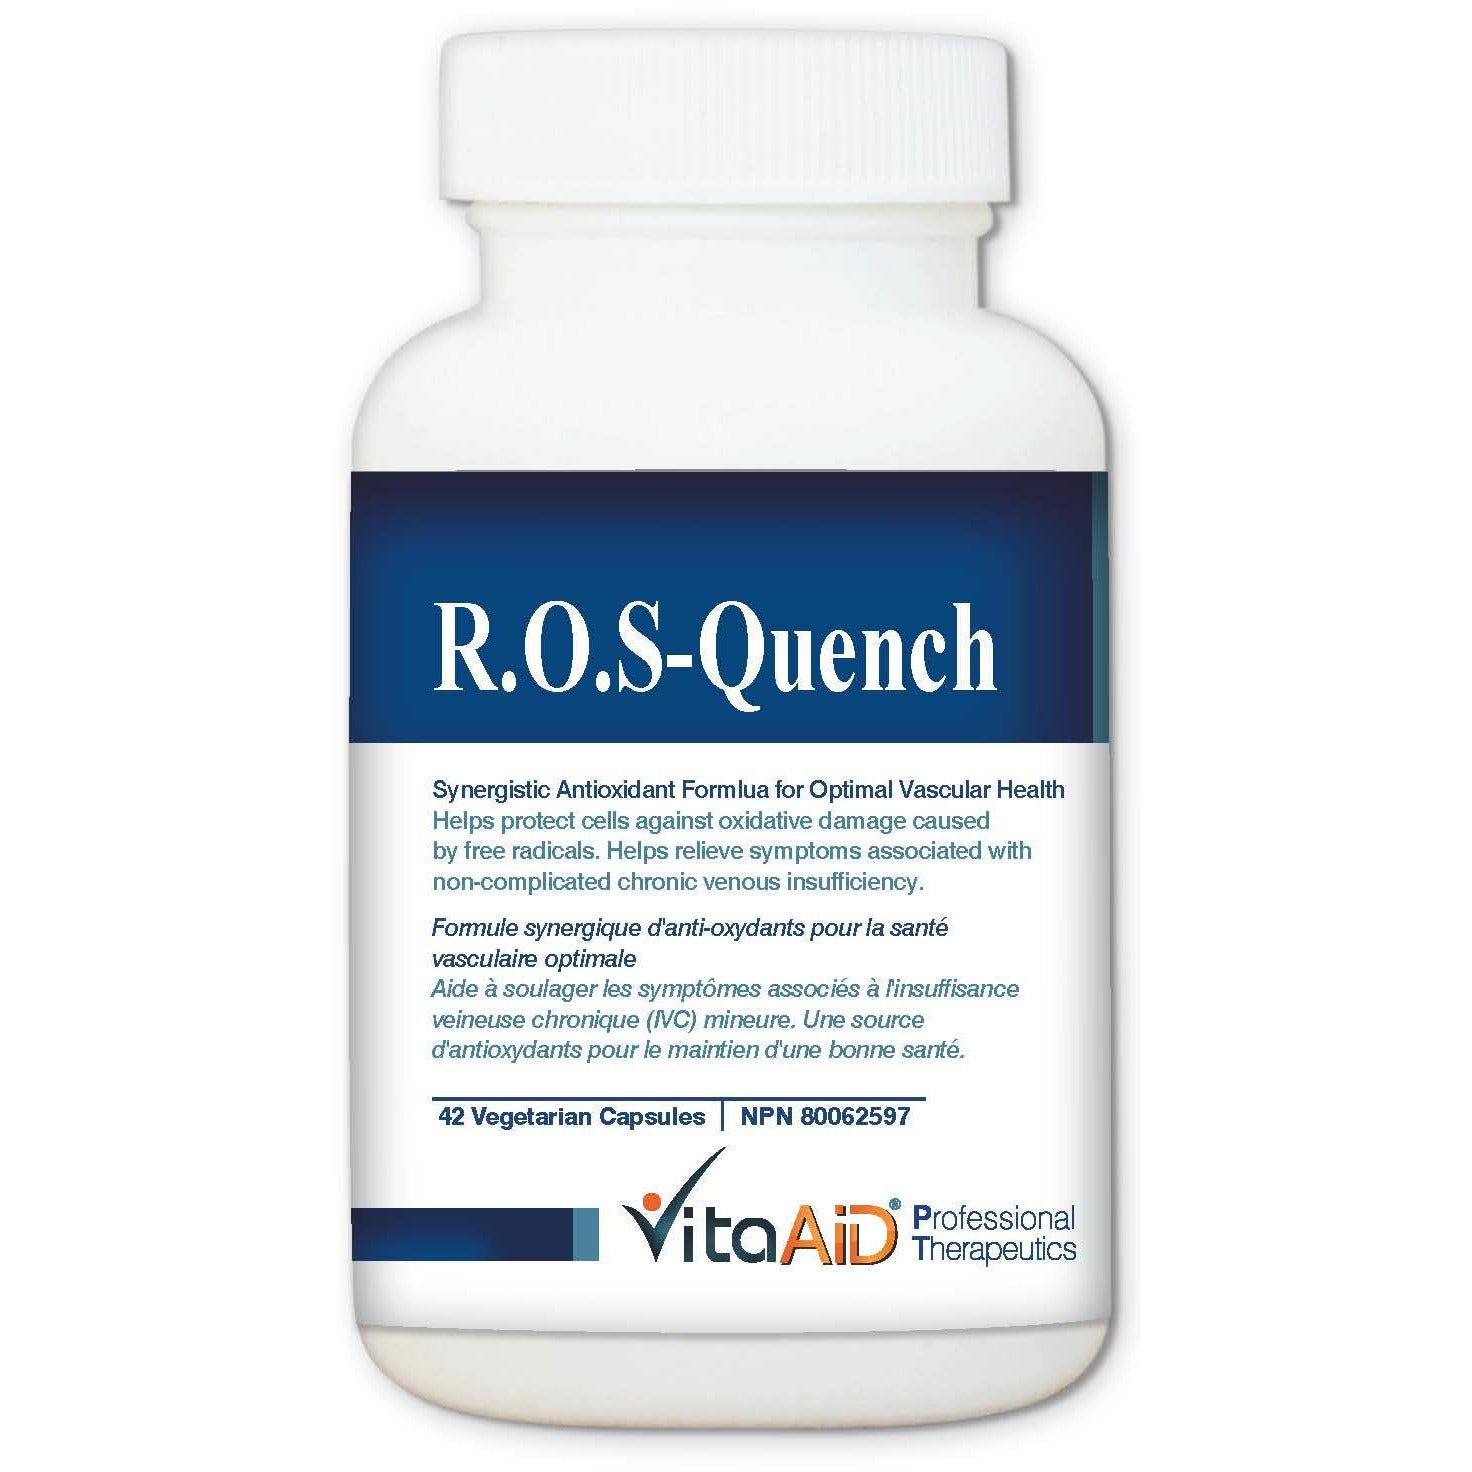 ROS-Quench Synergistic Super-Antioxidant Formula Featuring High Dose All-Trans Resveratrol 42 veg caps